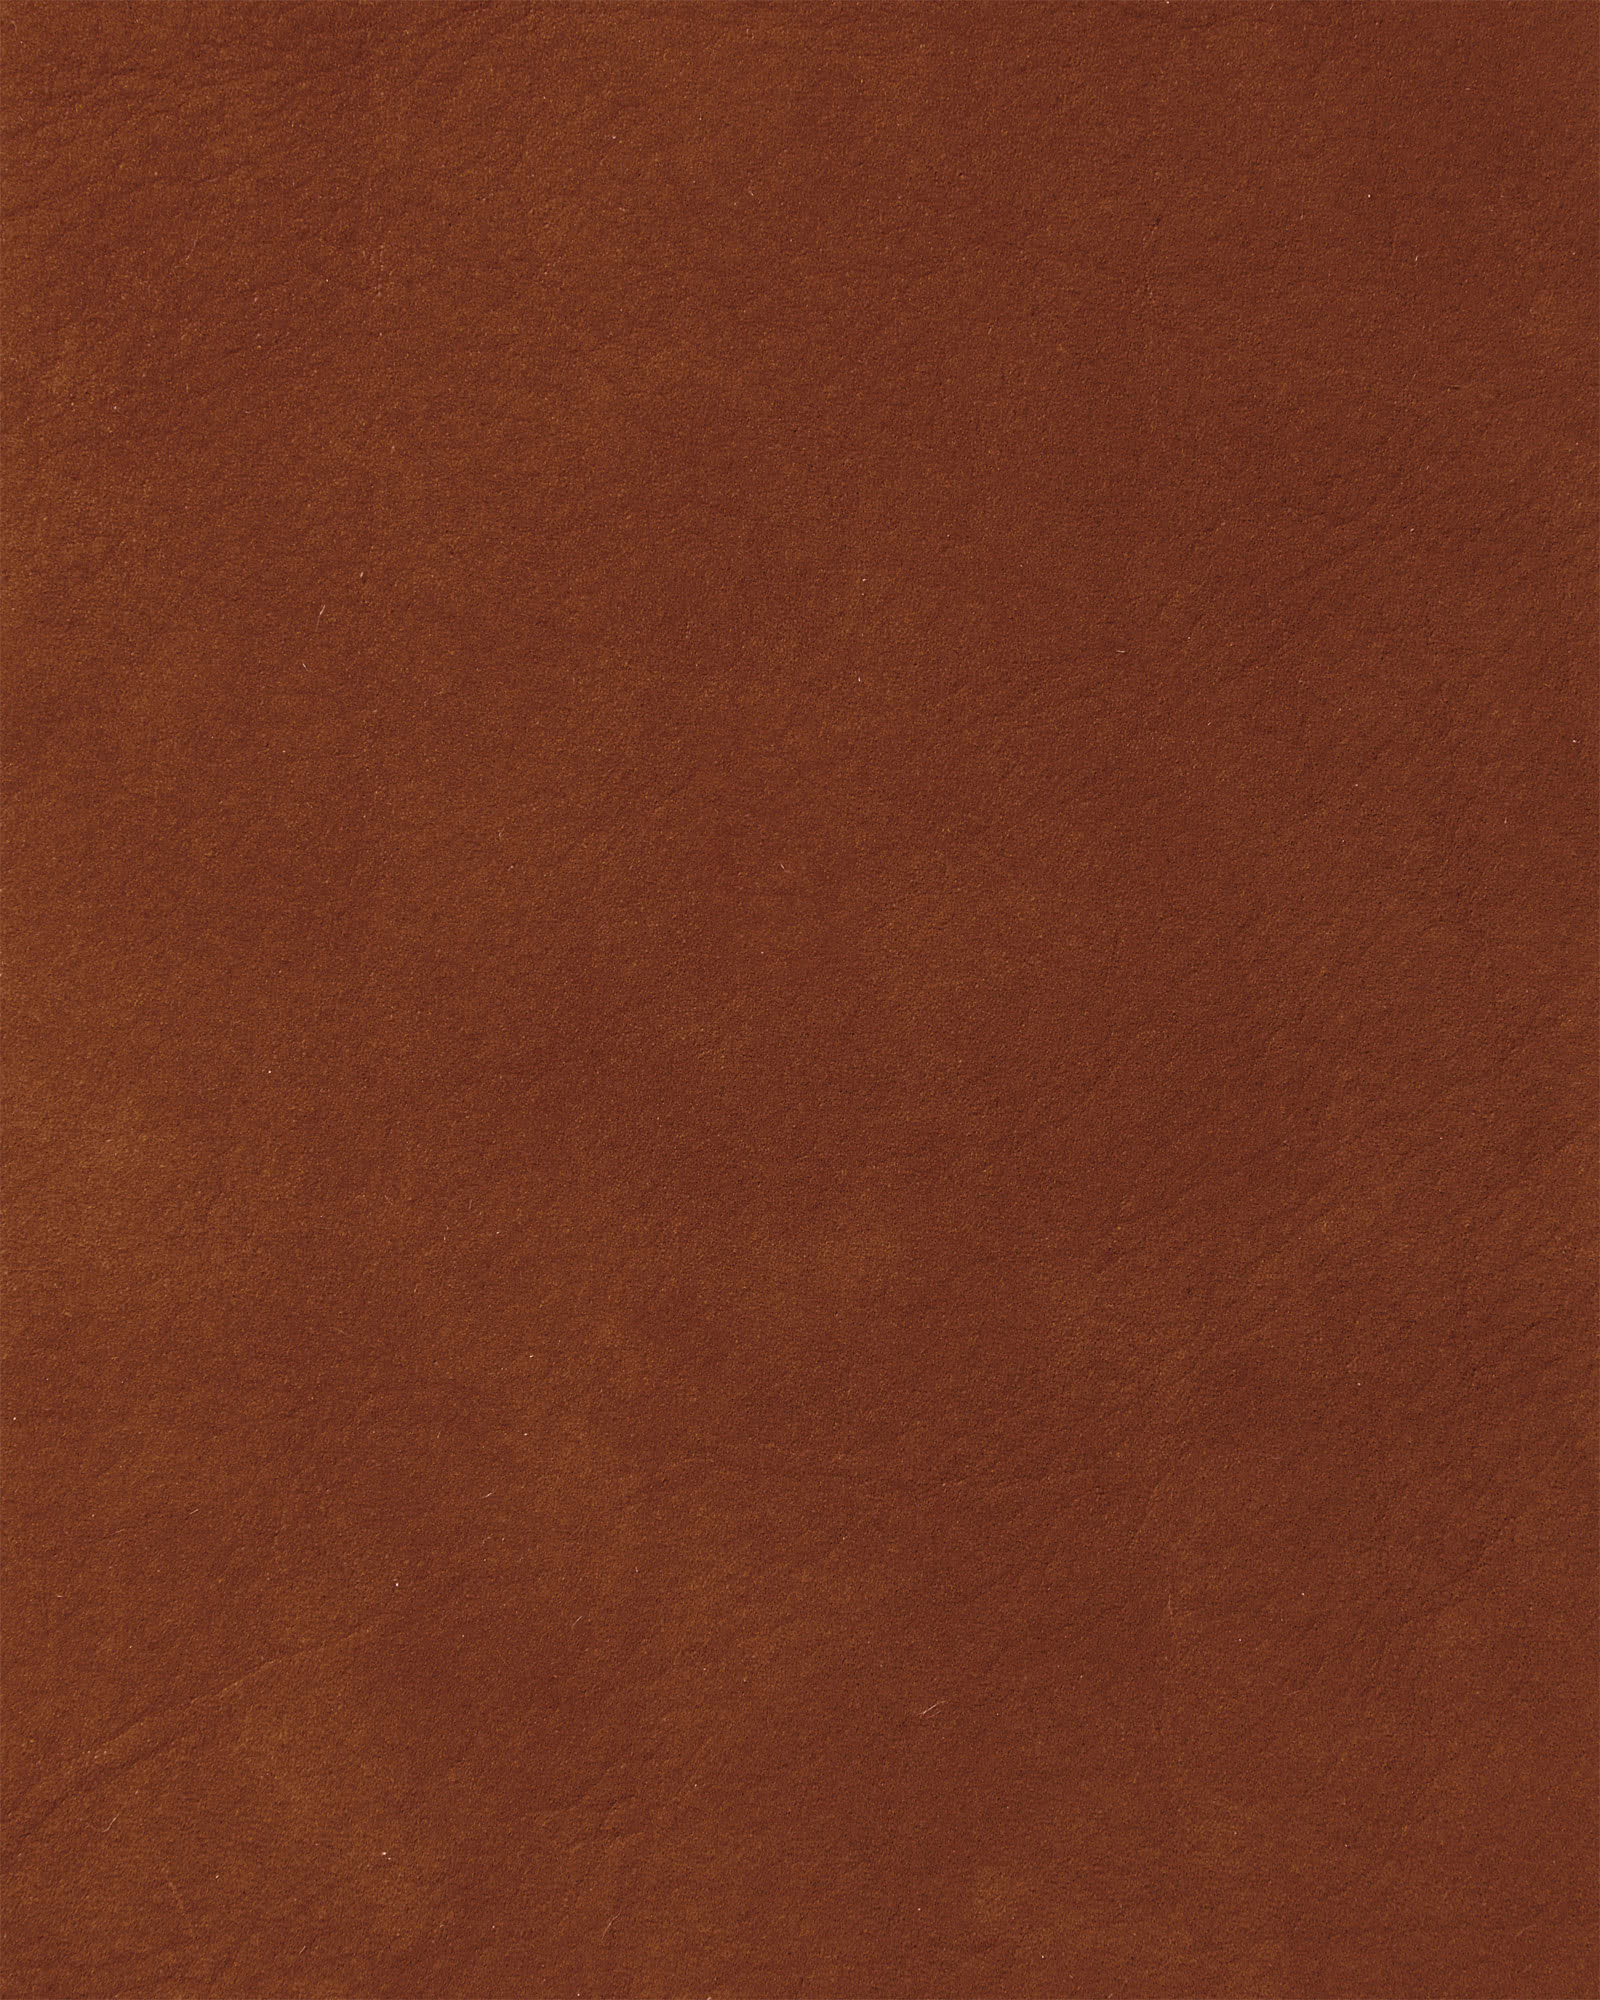 Cottswald Leather - Terracotta,